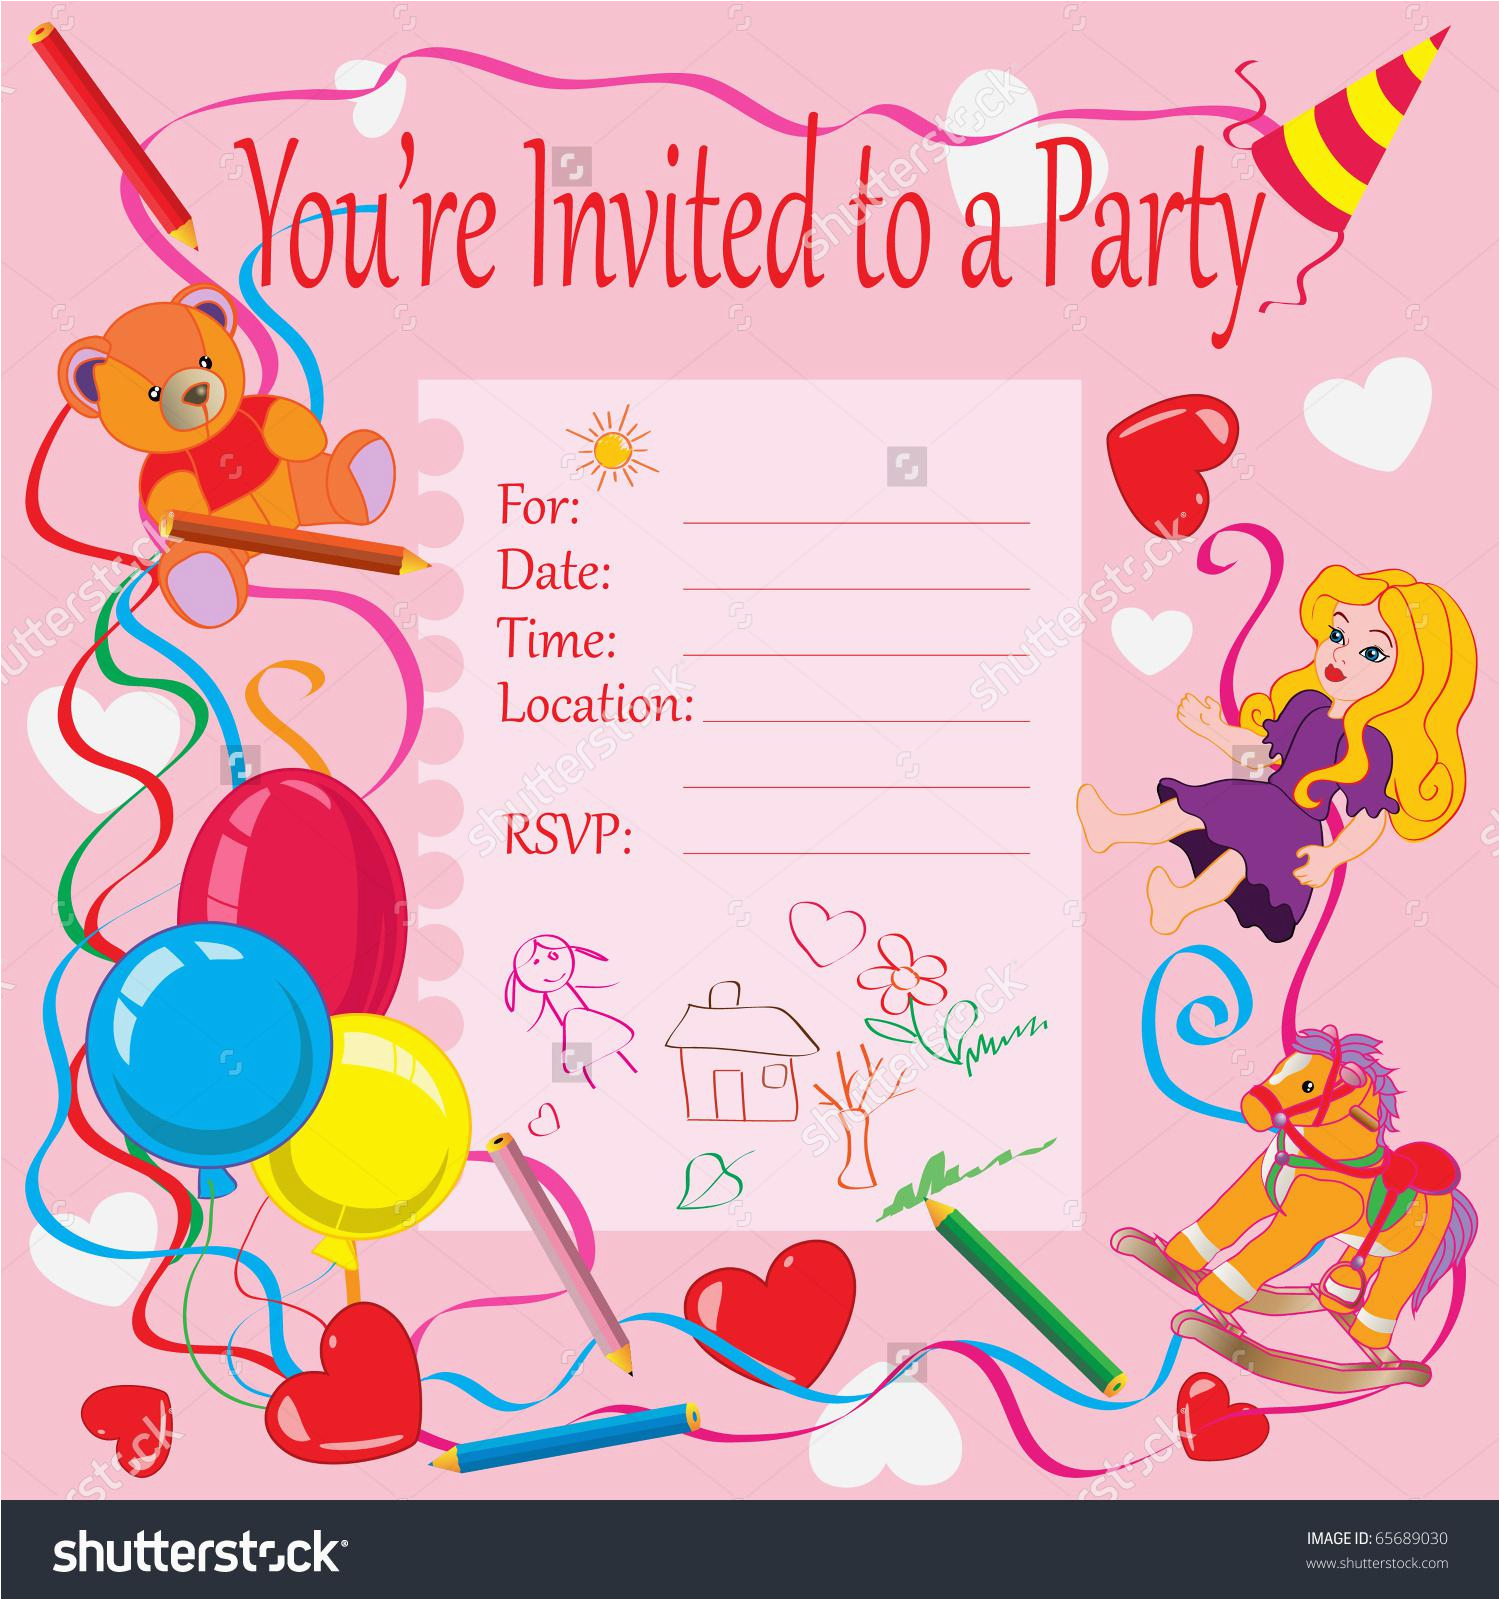 Print Your Own Birthday Invitations Free Make Your Own Birthday - Make Your Own Birthday Party Invitations Free Printable